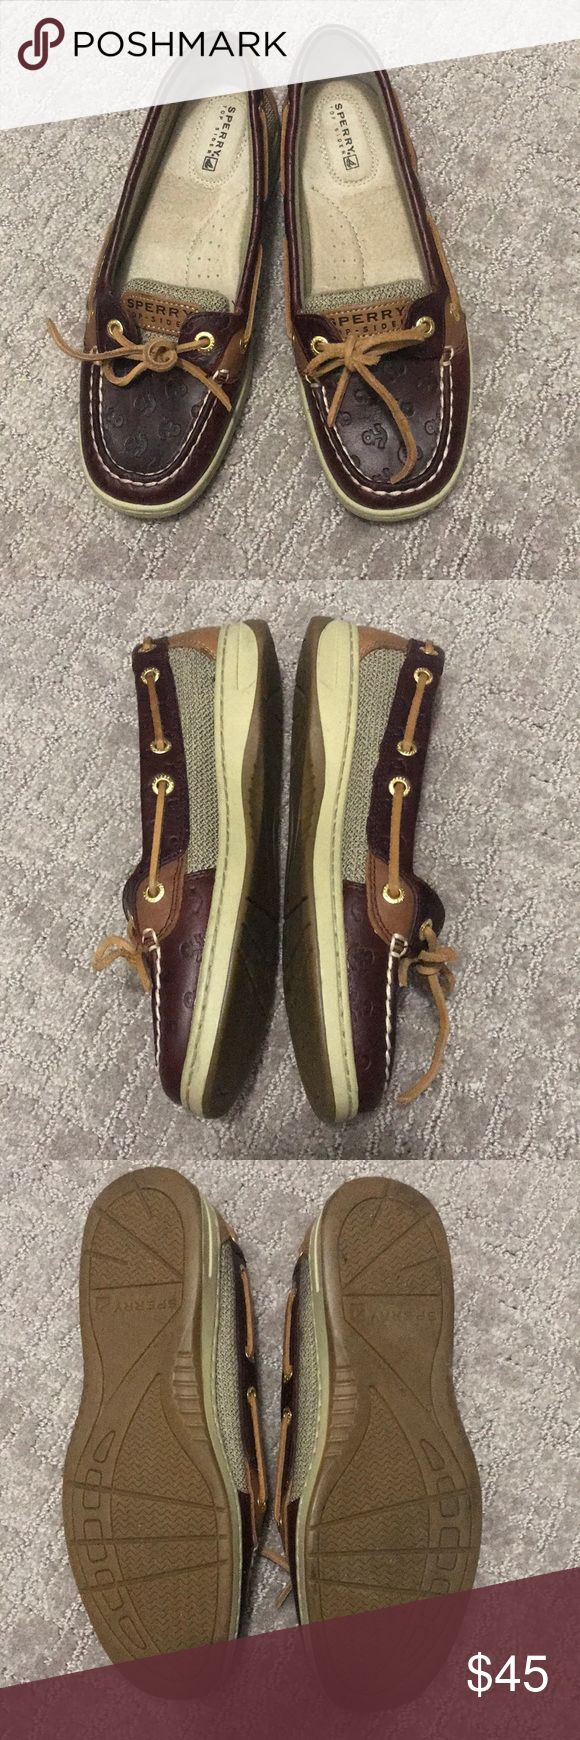 Like new! Sperry top-sider angelfish boat shoes In like new condition, size 6M. Only worn once! Really cute and classic style Sperry Top-Sider Shoes Flats & Loafers